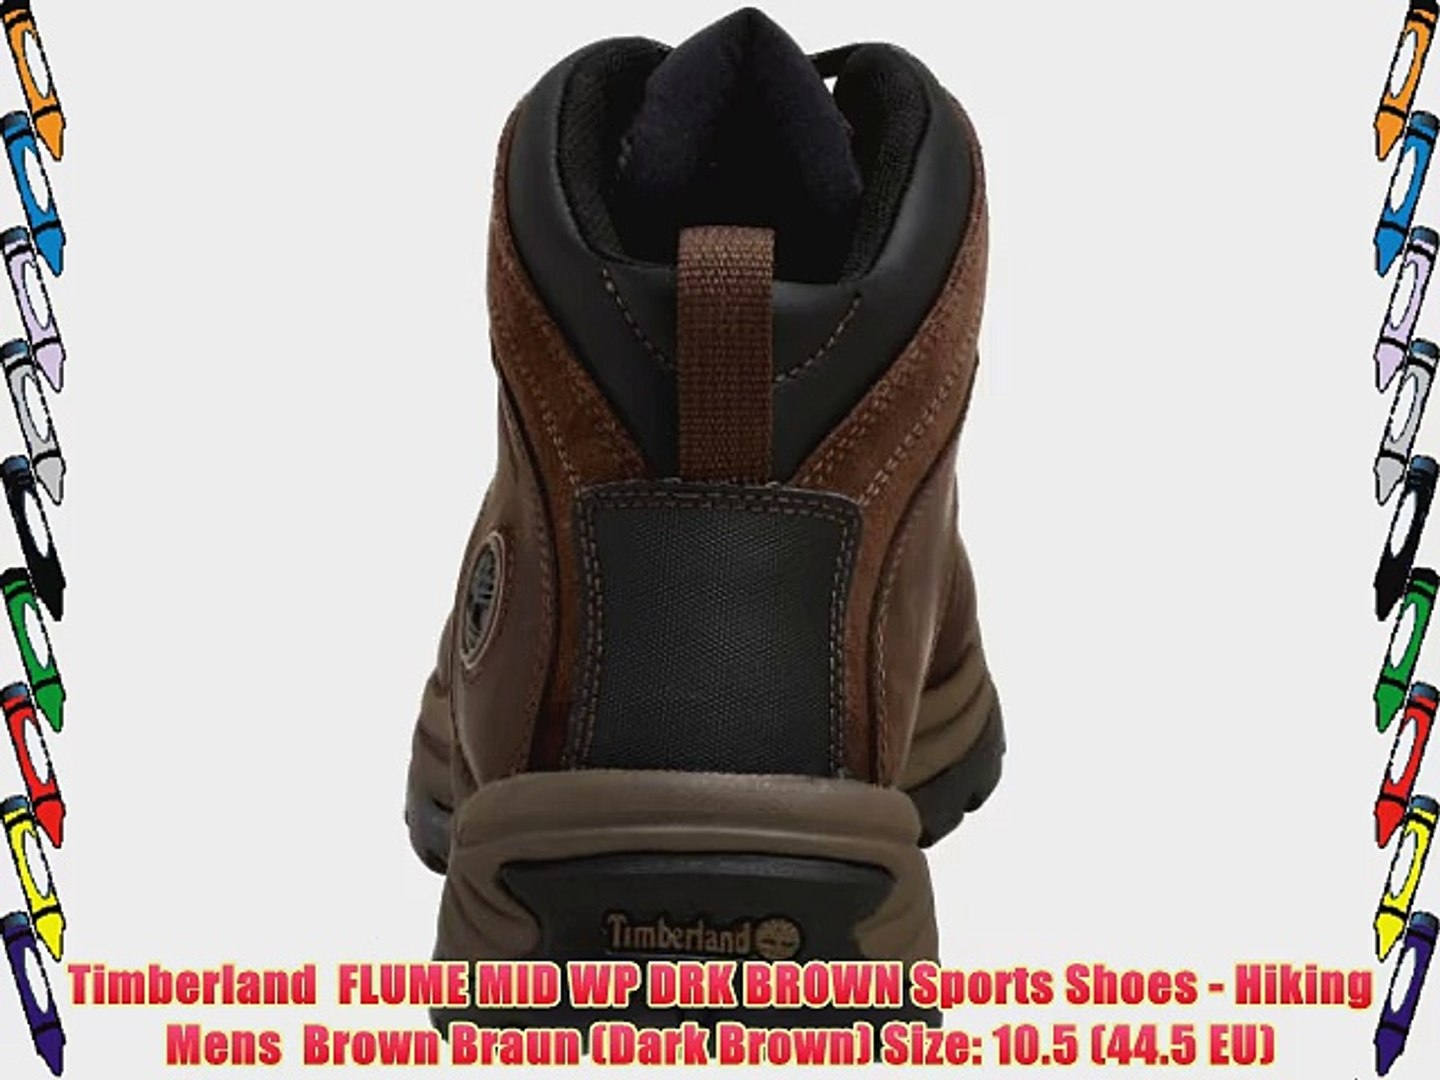 8523f58516c Timberland FLUME MID WP DRK BROWN Sports Shoes - Hiking Mens Brown Braun  (Dark Brown) Size: